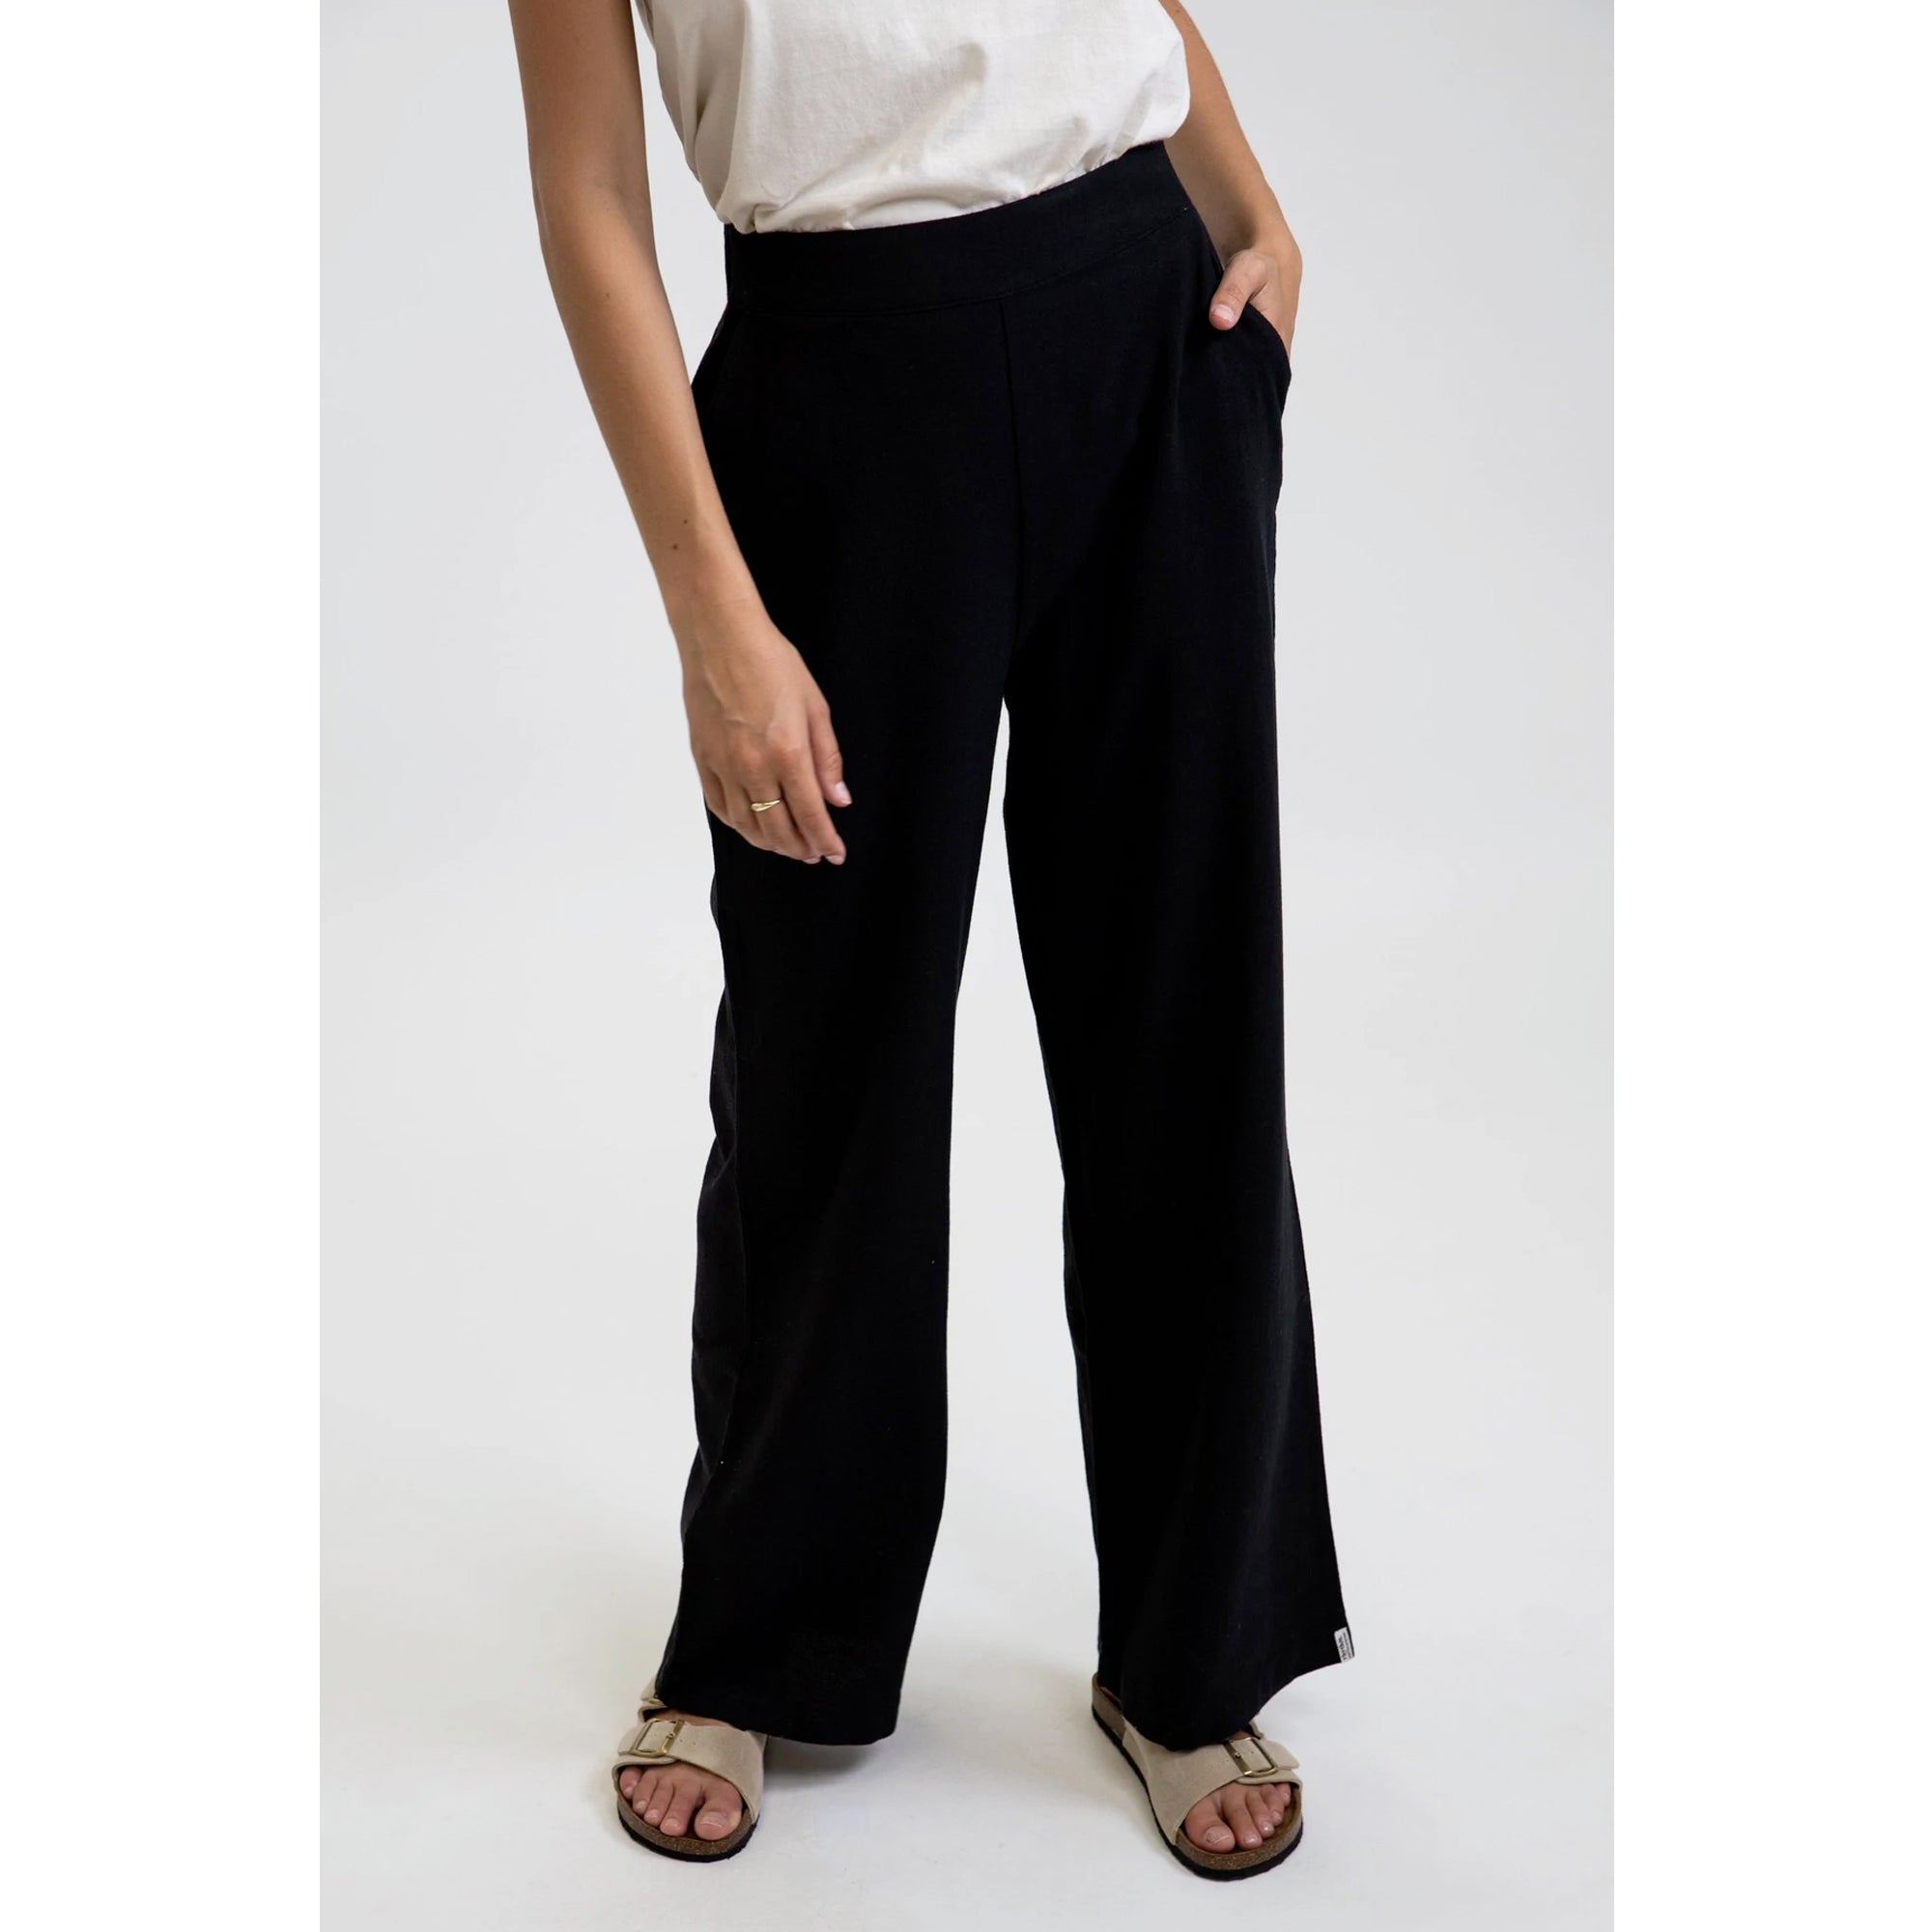 Rhythm Classic Wide Leg Women's Pants